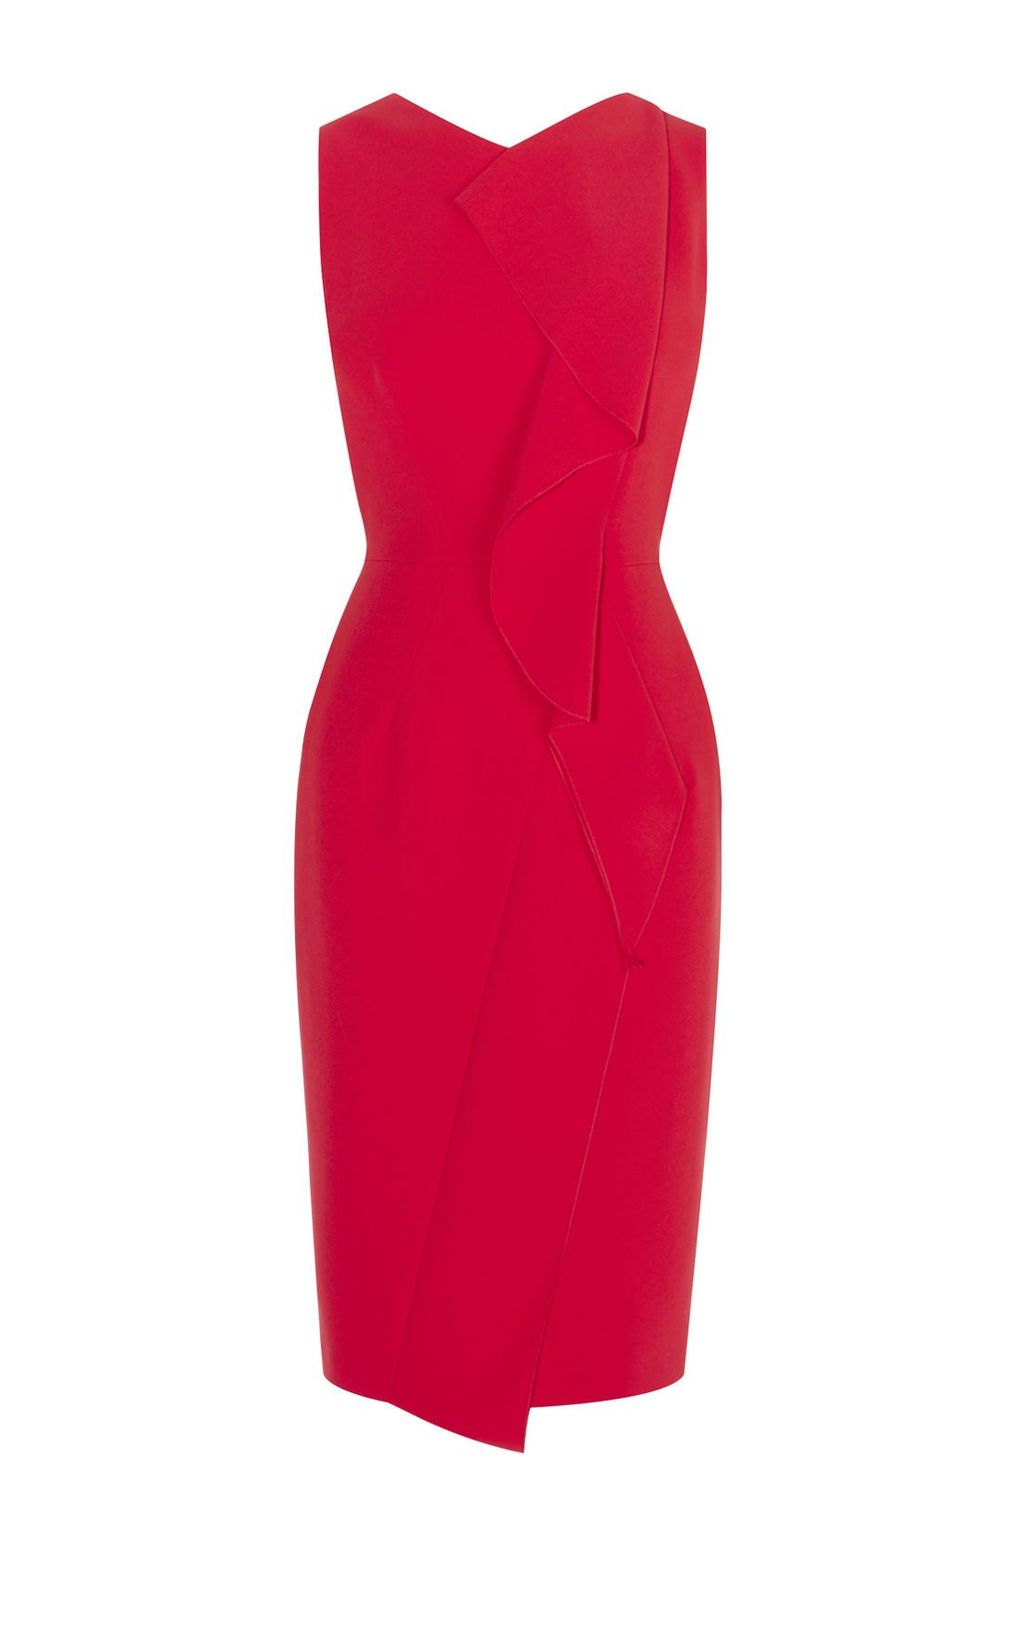 Subtle Ruffle Dress, Red - style: shift; neckline: v-neck; fit: tailored/fitted; pattern: plain; sleeve style: sleeveless; predominant colour: true red; occasions: evening; length: on the knee; fibres: polyester/polyamide - mix; sleeve length: sleeveless; pattern type: fabric; texture group: other - light to midweight; season: s/s 2016; wardrobe: event